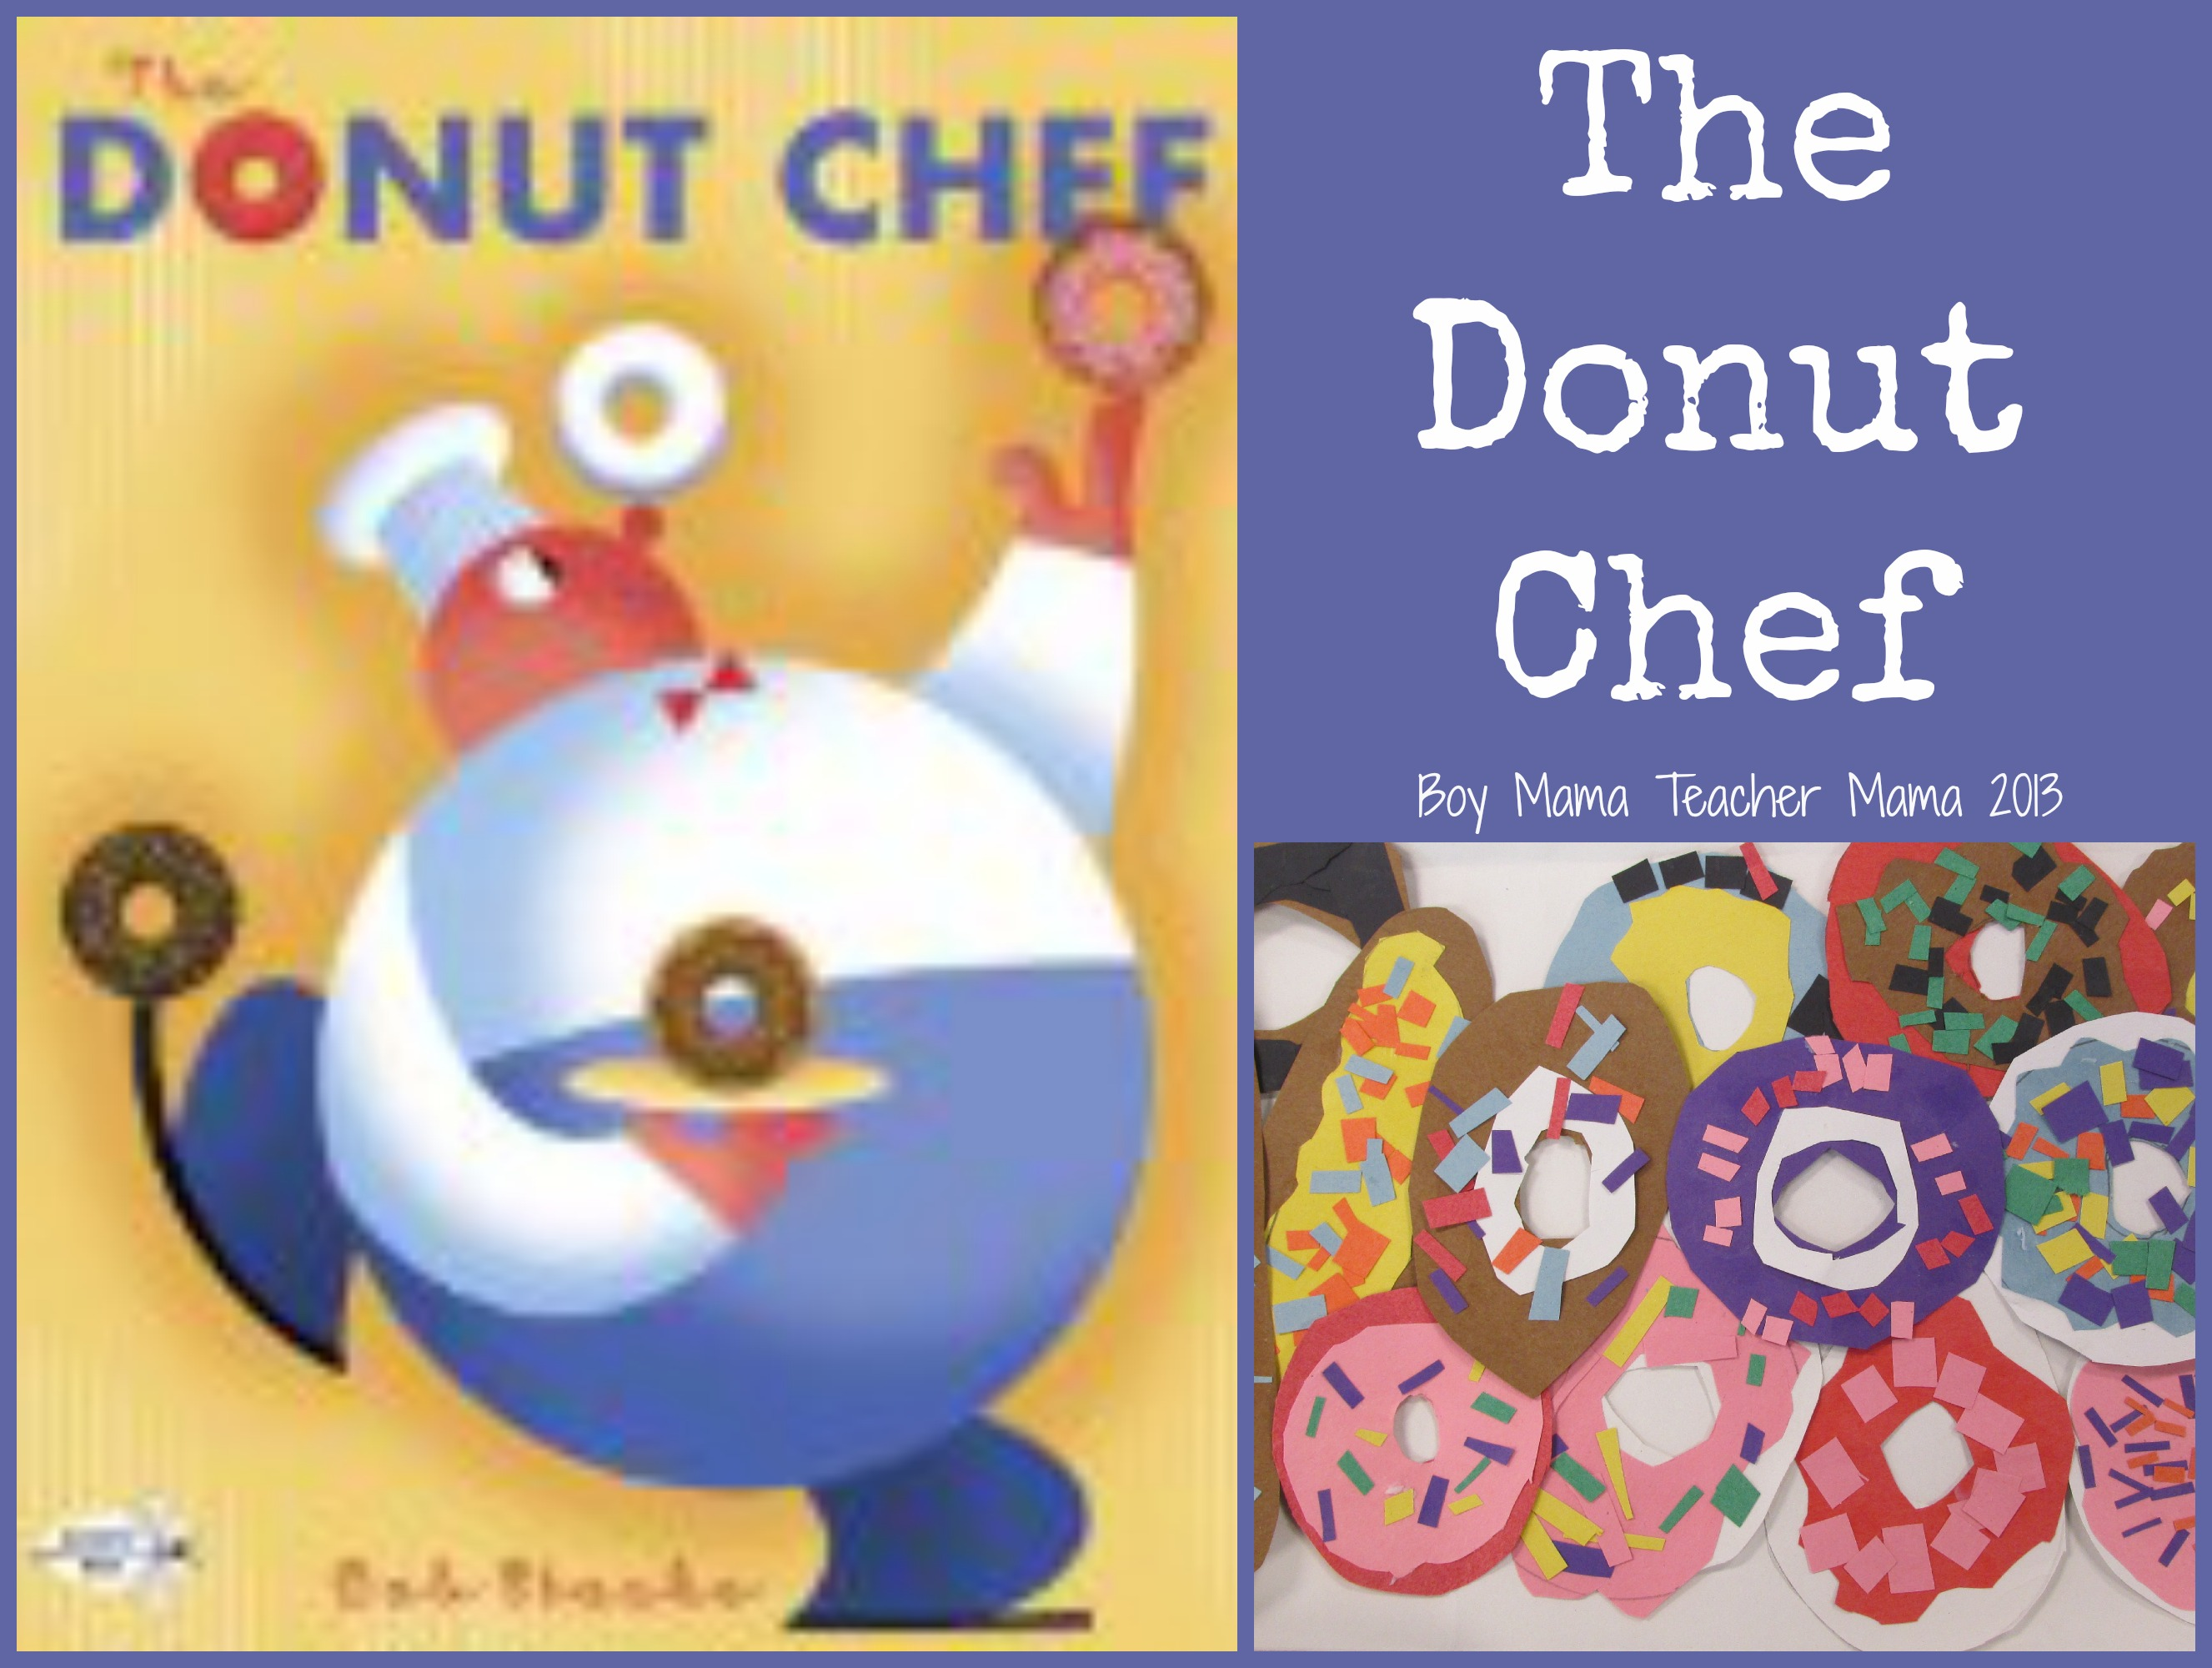 Boy Mama Teacher Mama | The Donut Chef